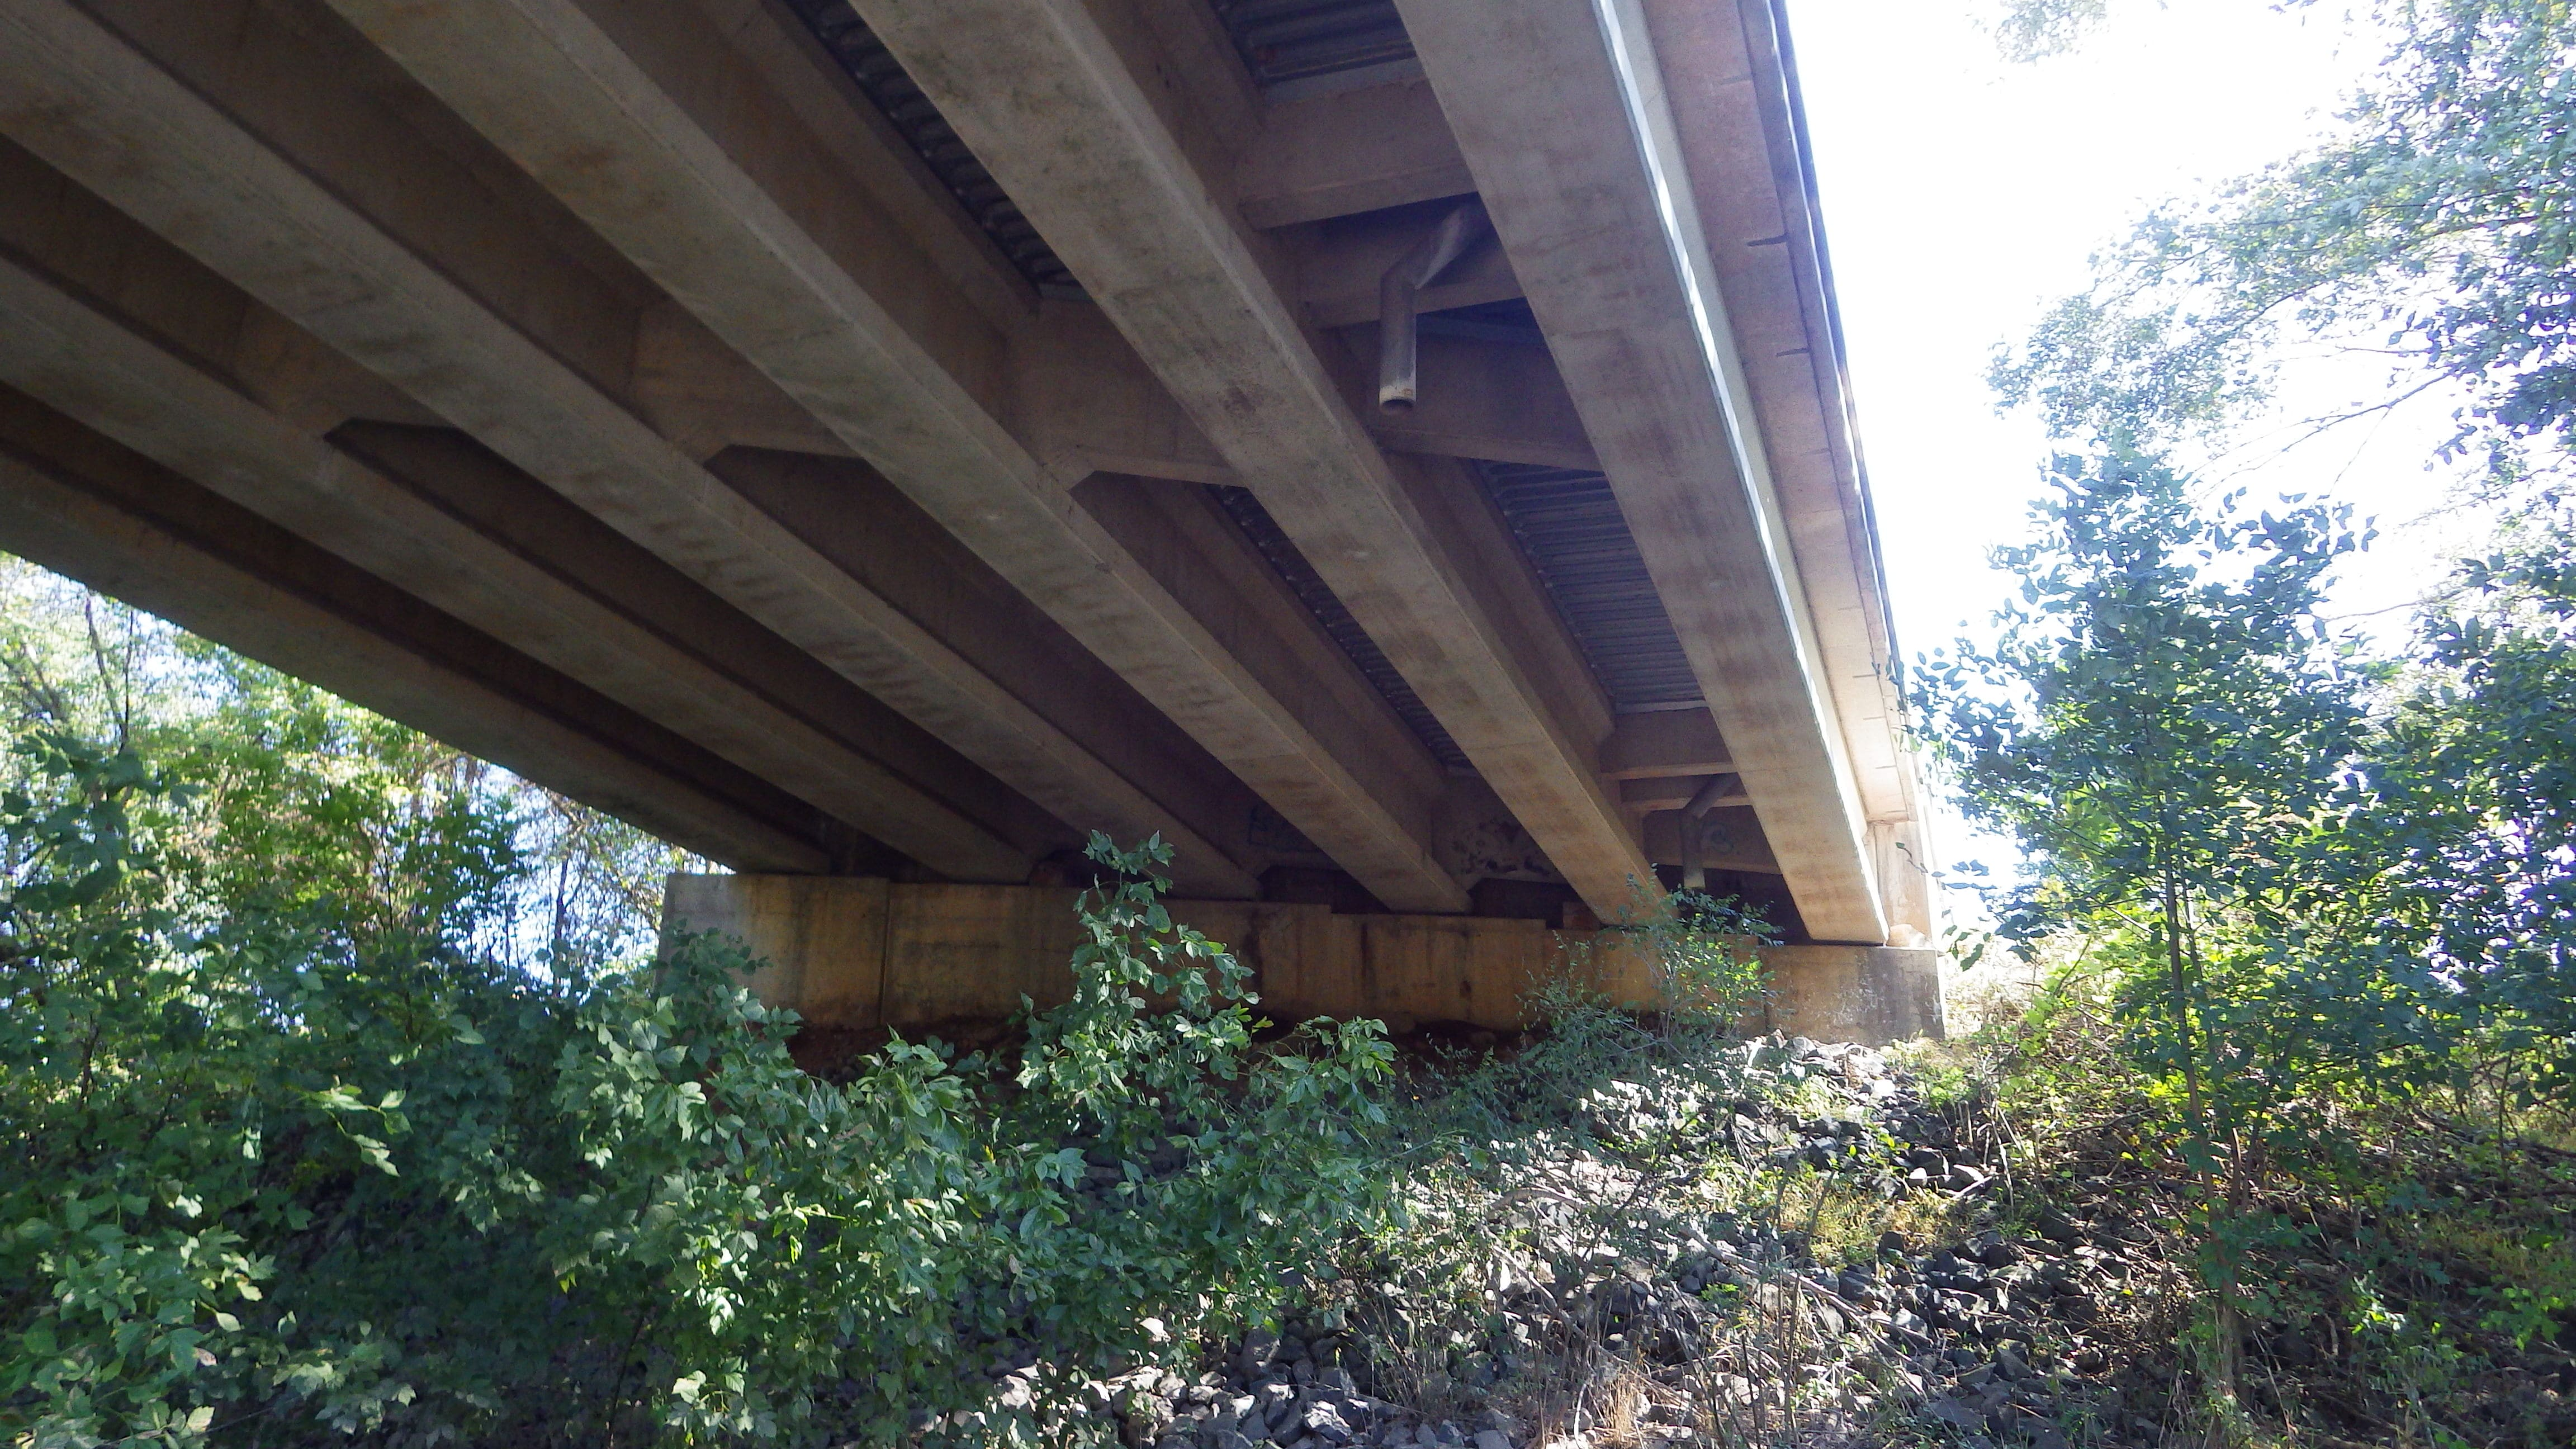 7-east-abutment-and-bridge-superstructure-min